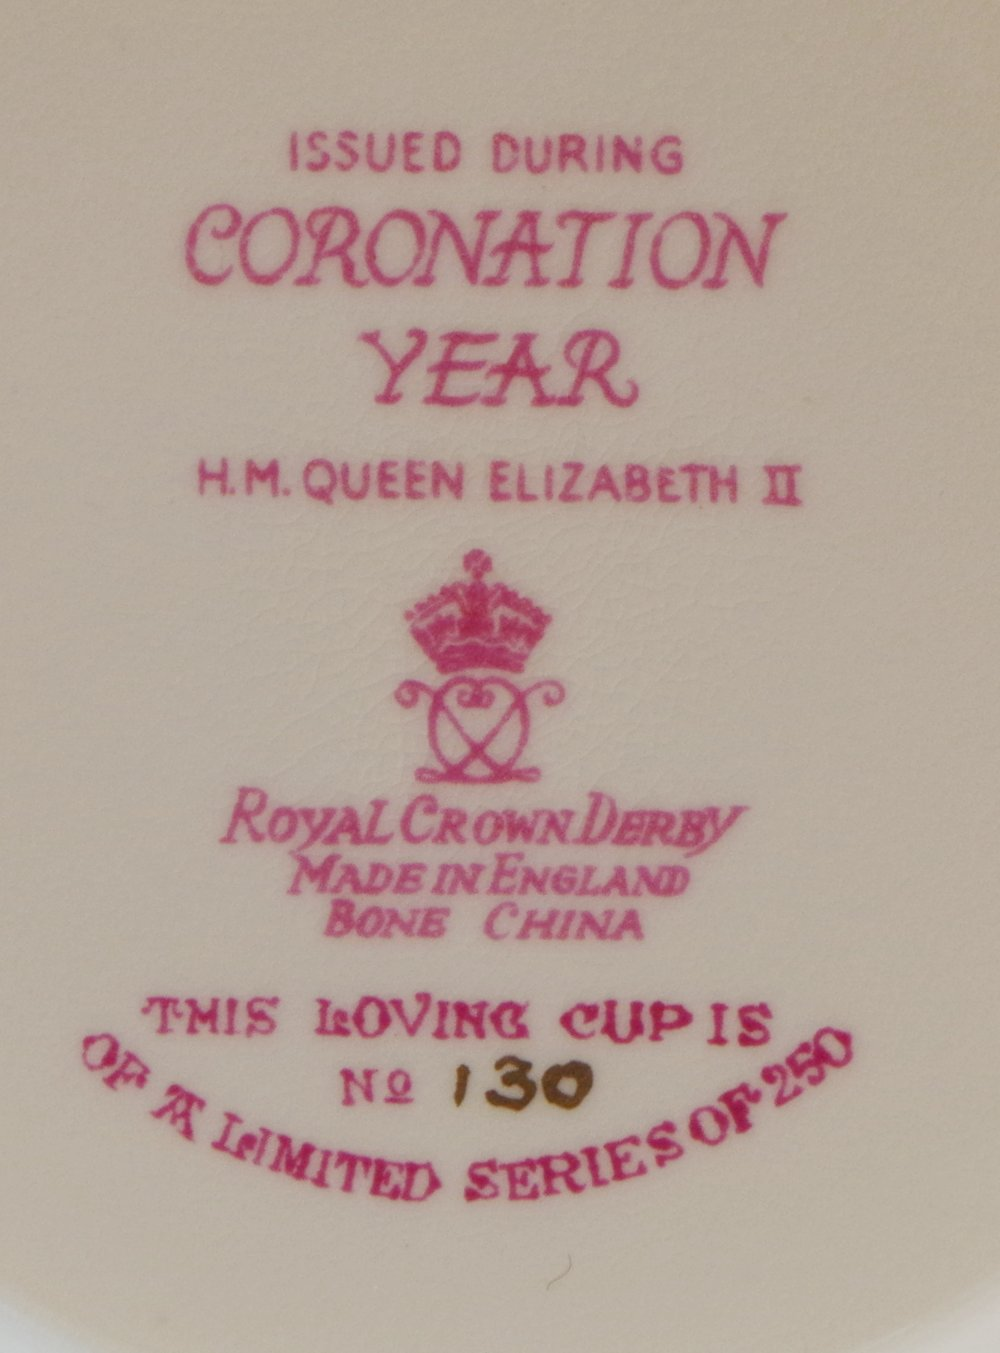 royal-crown-derby-gadroon-elizabeth-II-coronation-tray 1953-reverse